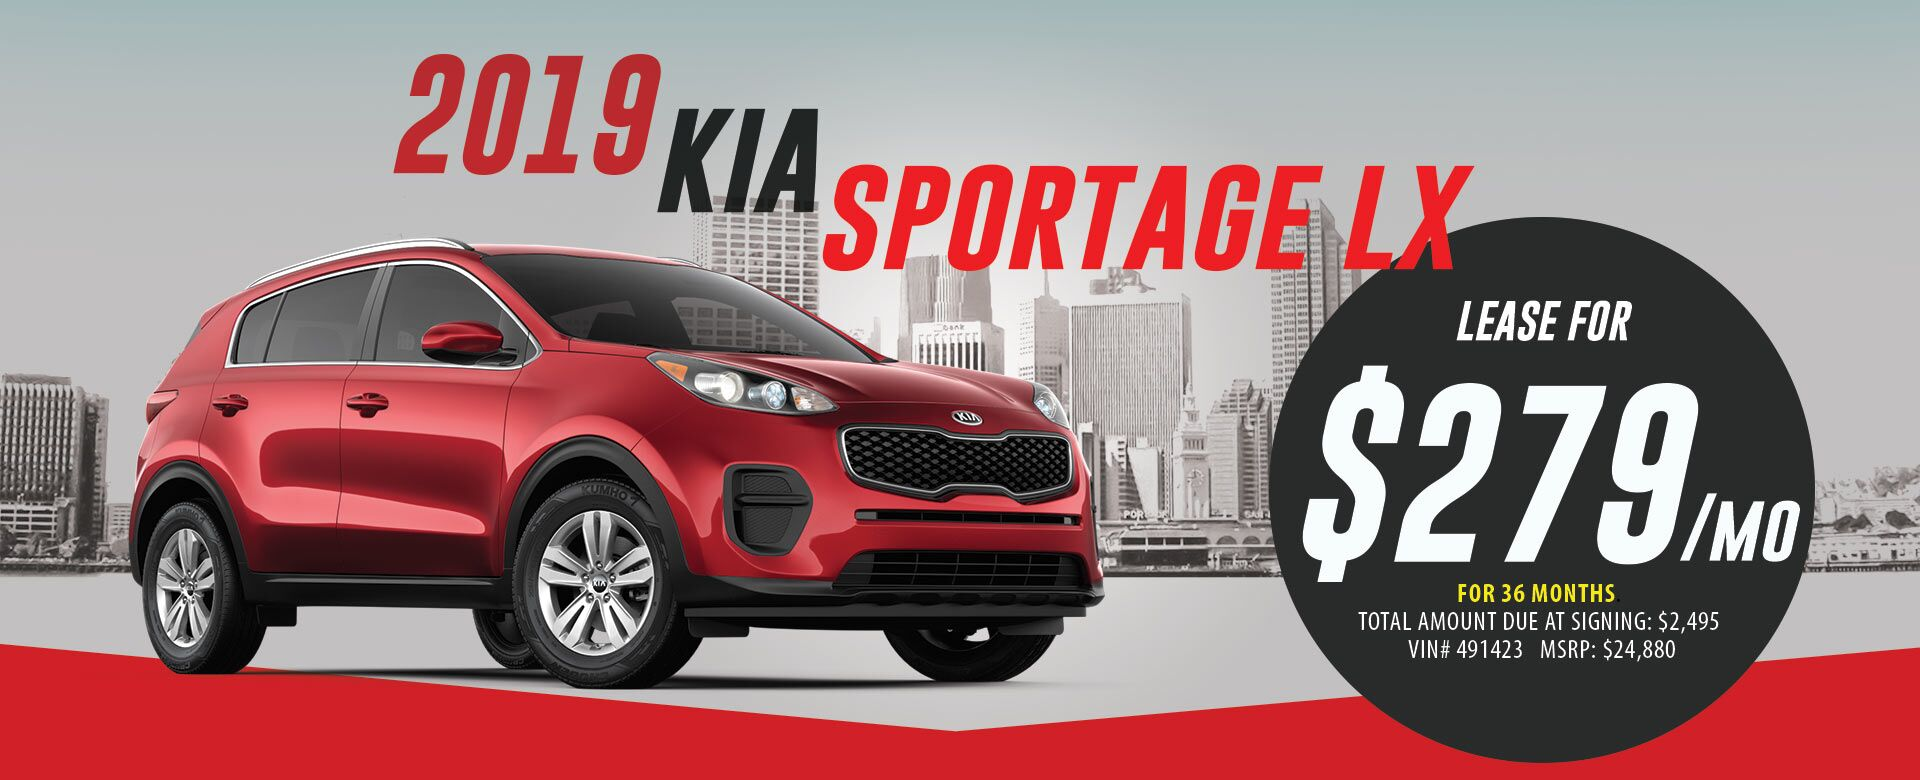 Lease 2019 Kia Sportage LX for $279/month for 36 months